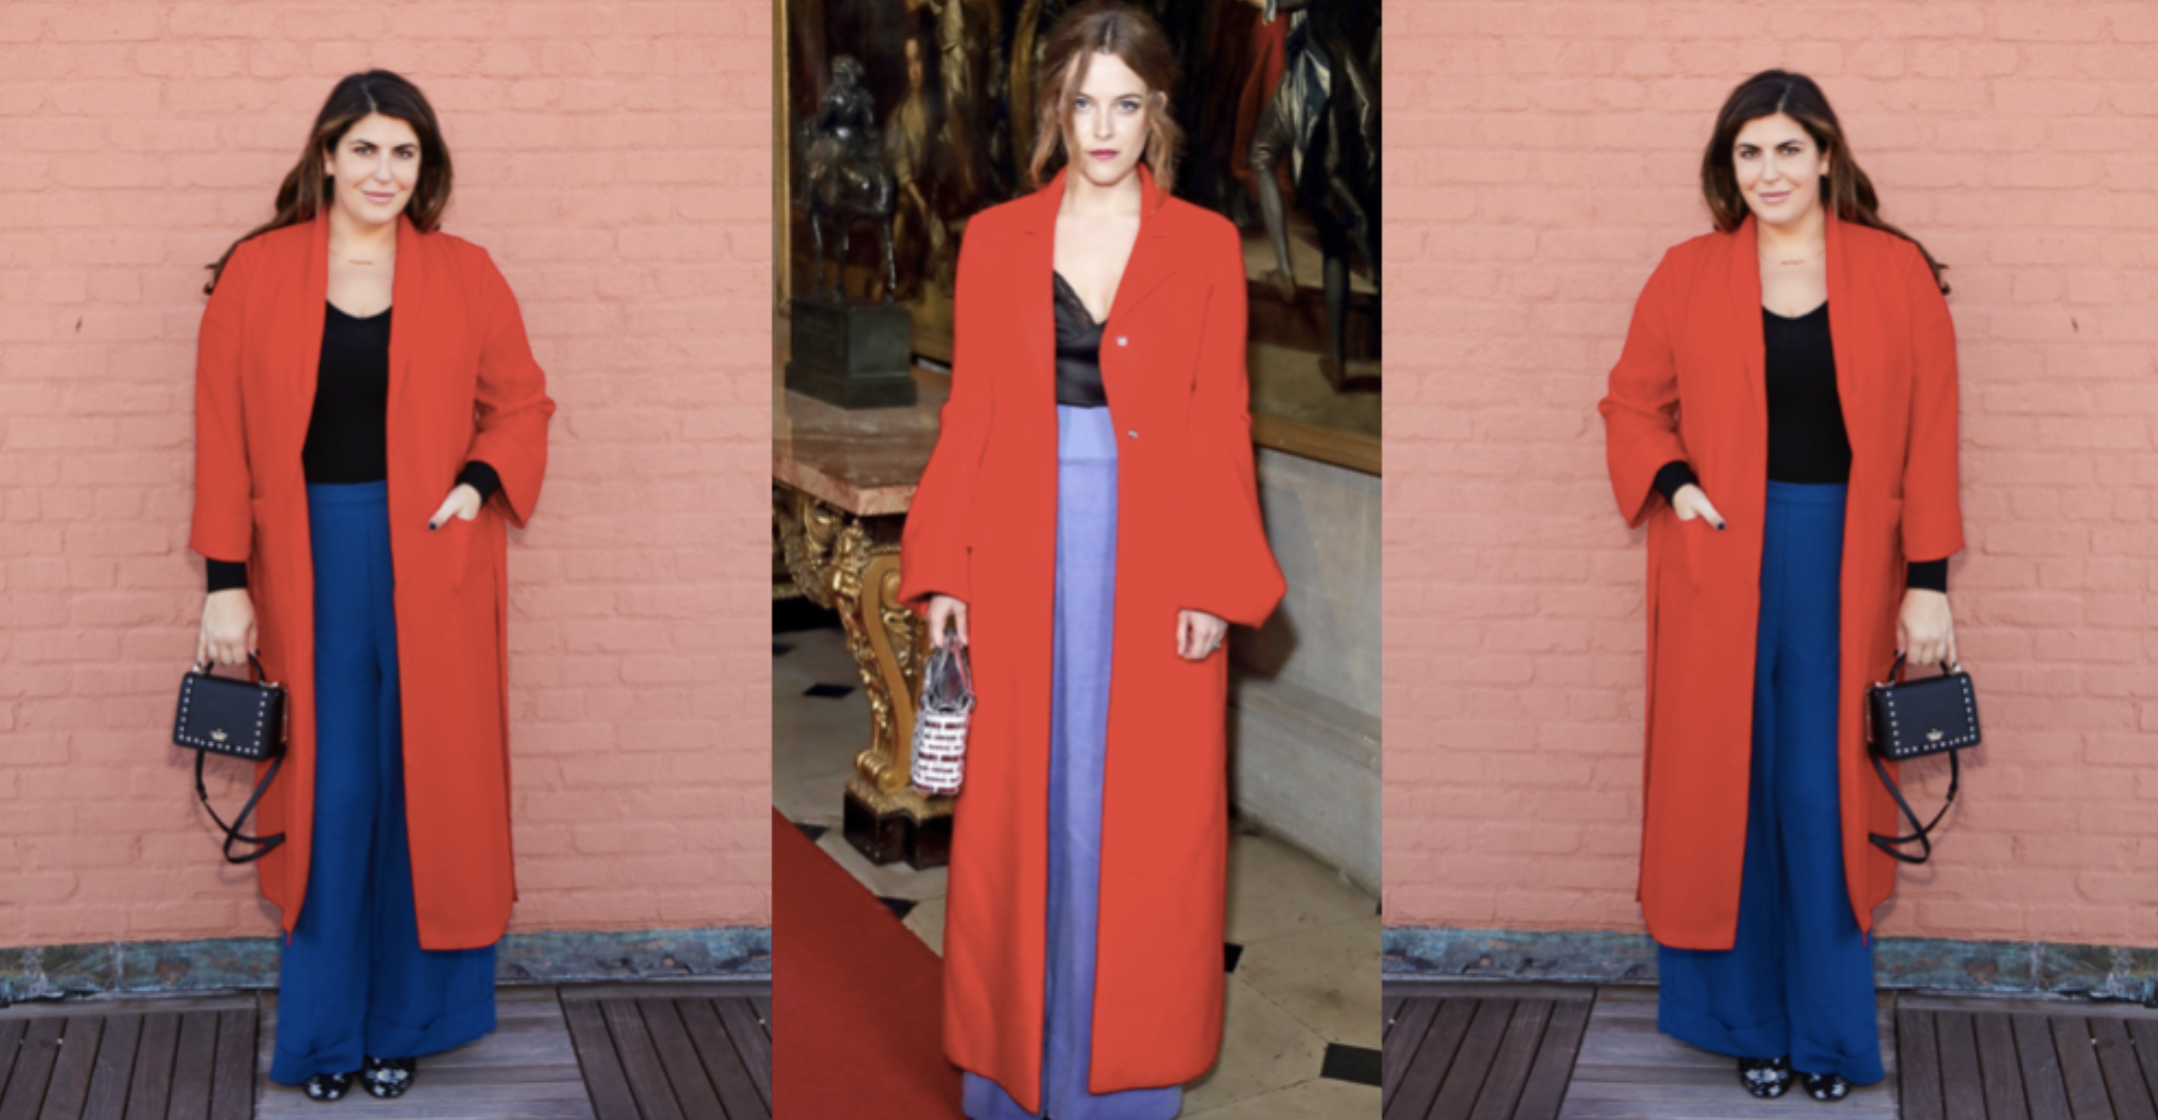 Katie rocking a red-cobalt color block inspired by Riley Keough